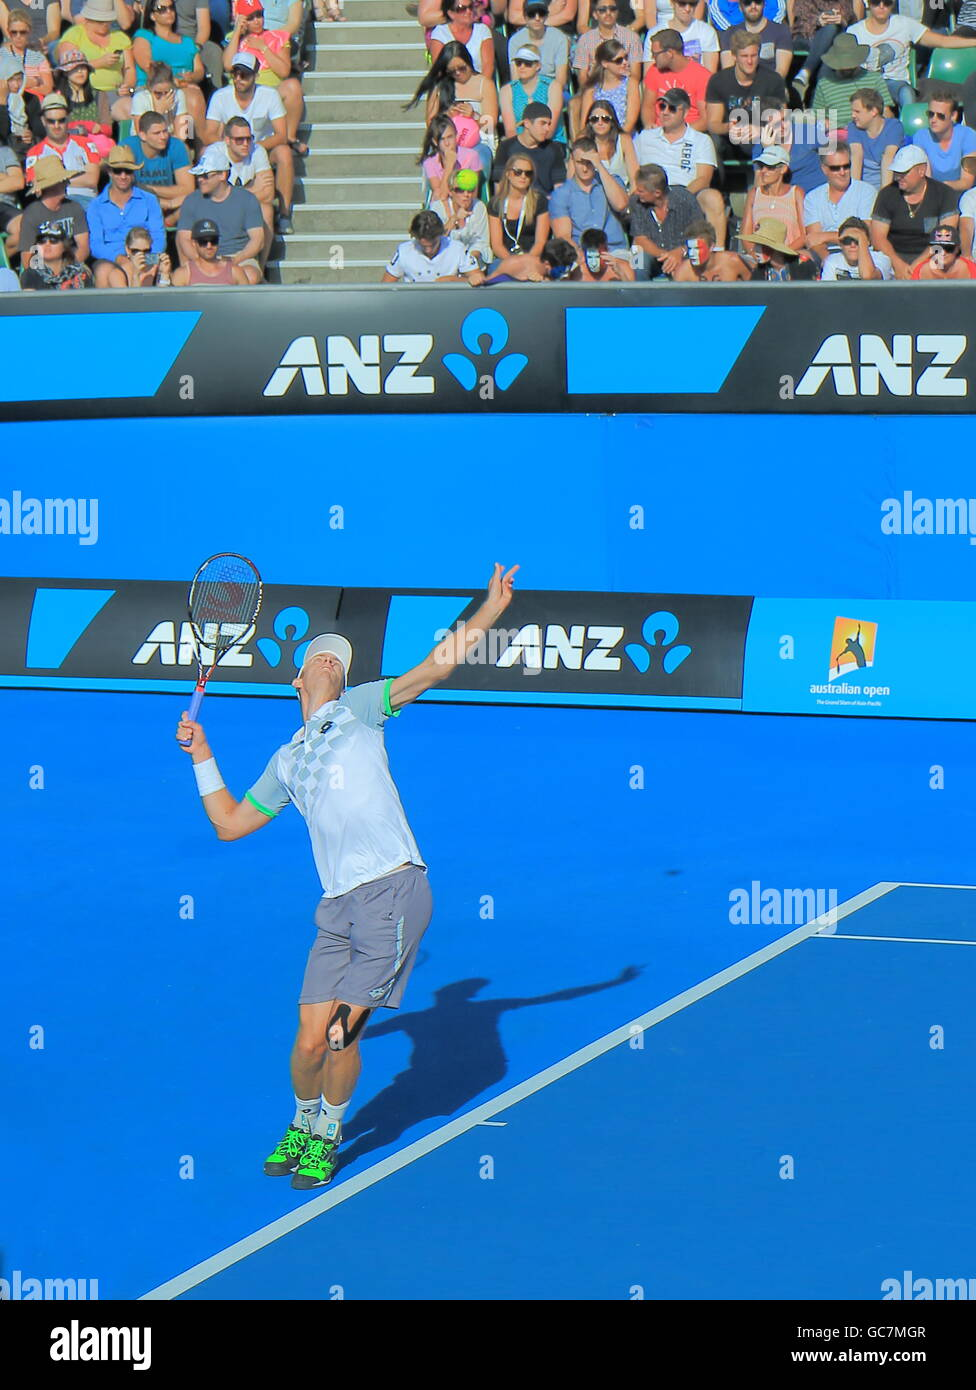 Kevin Anderson plays at Australian Open in Melbourne Australia. - Stock Image